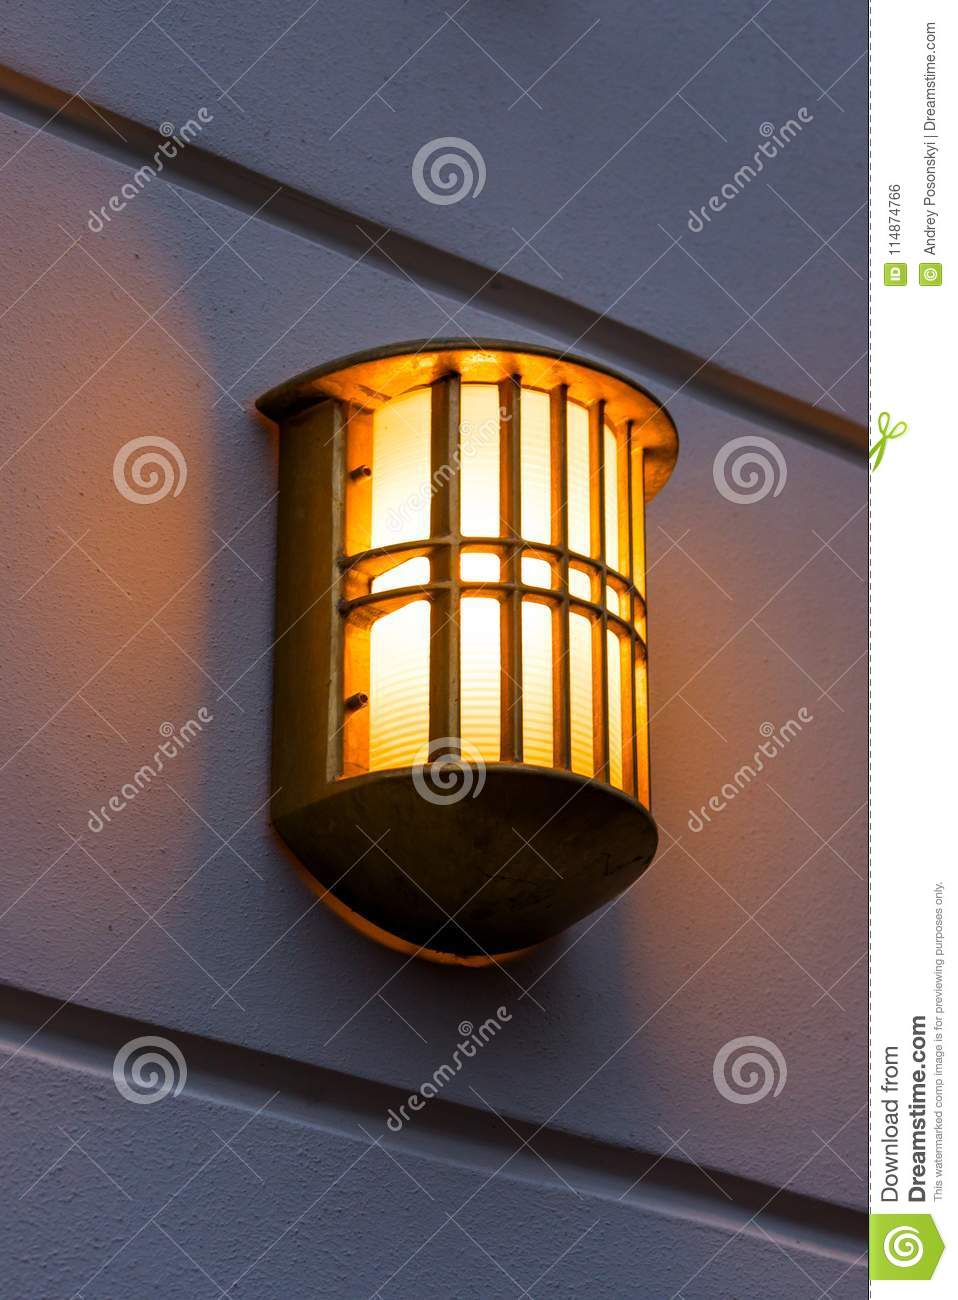 Wall The Stock Lamp On Street All weather mounted Photo ARj543L